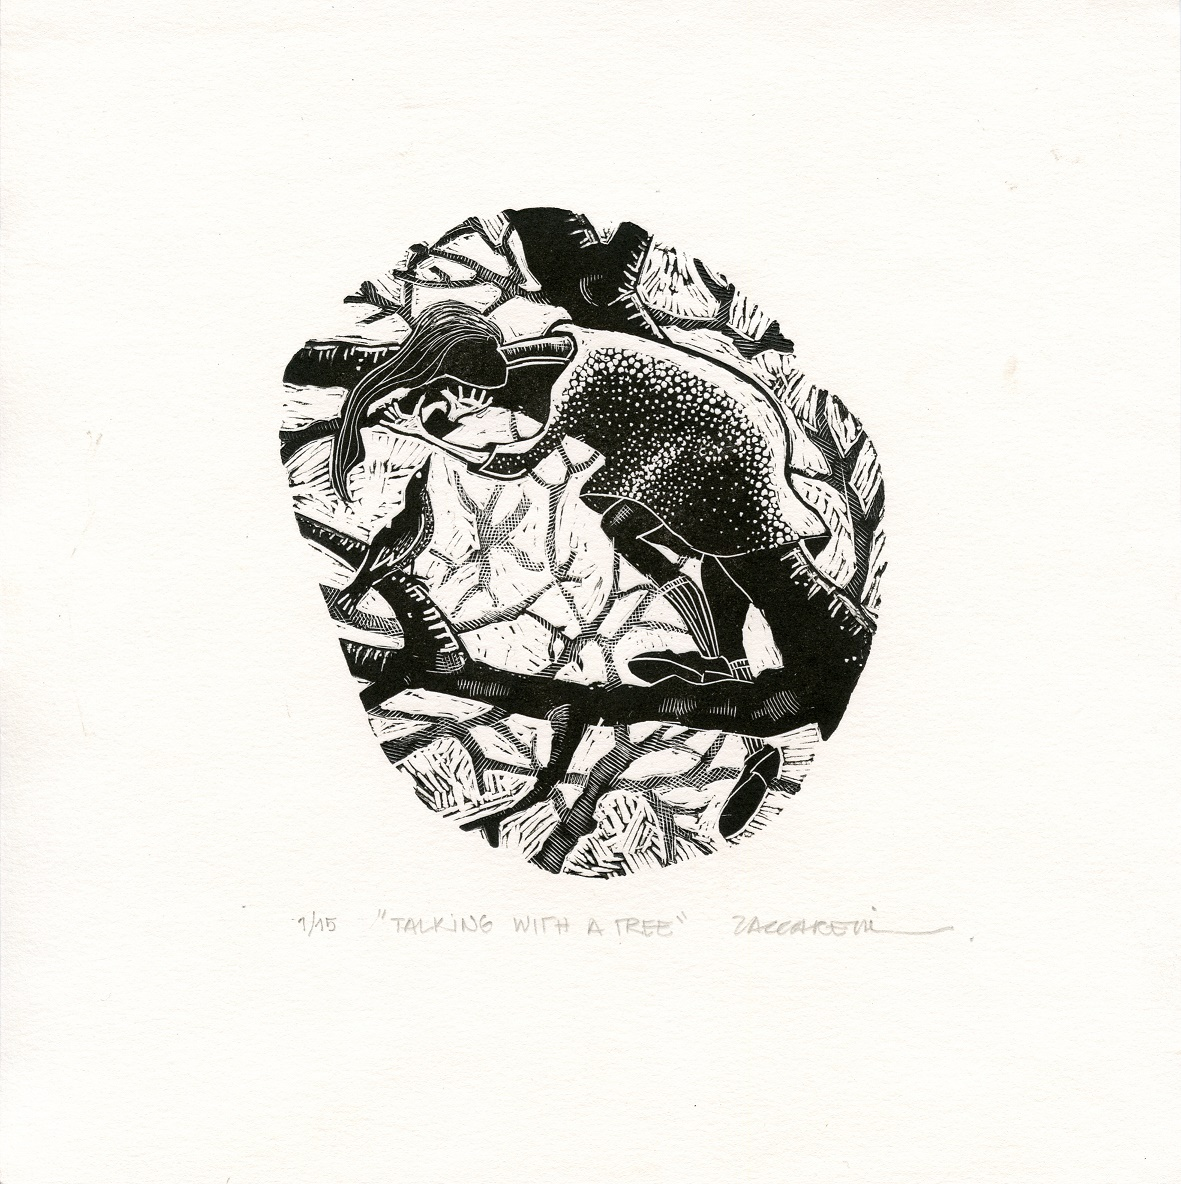 Zaccarelli, Camila: Talking with a Tree wood engraving